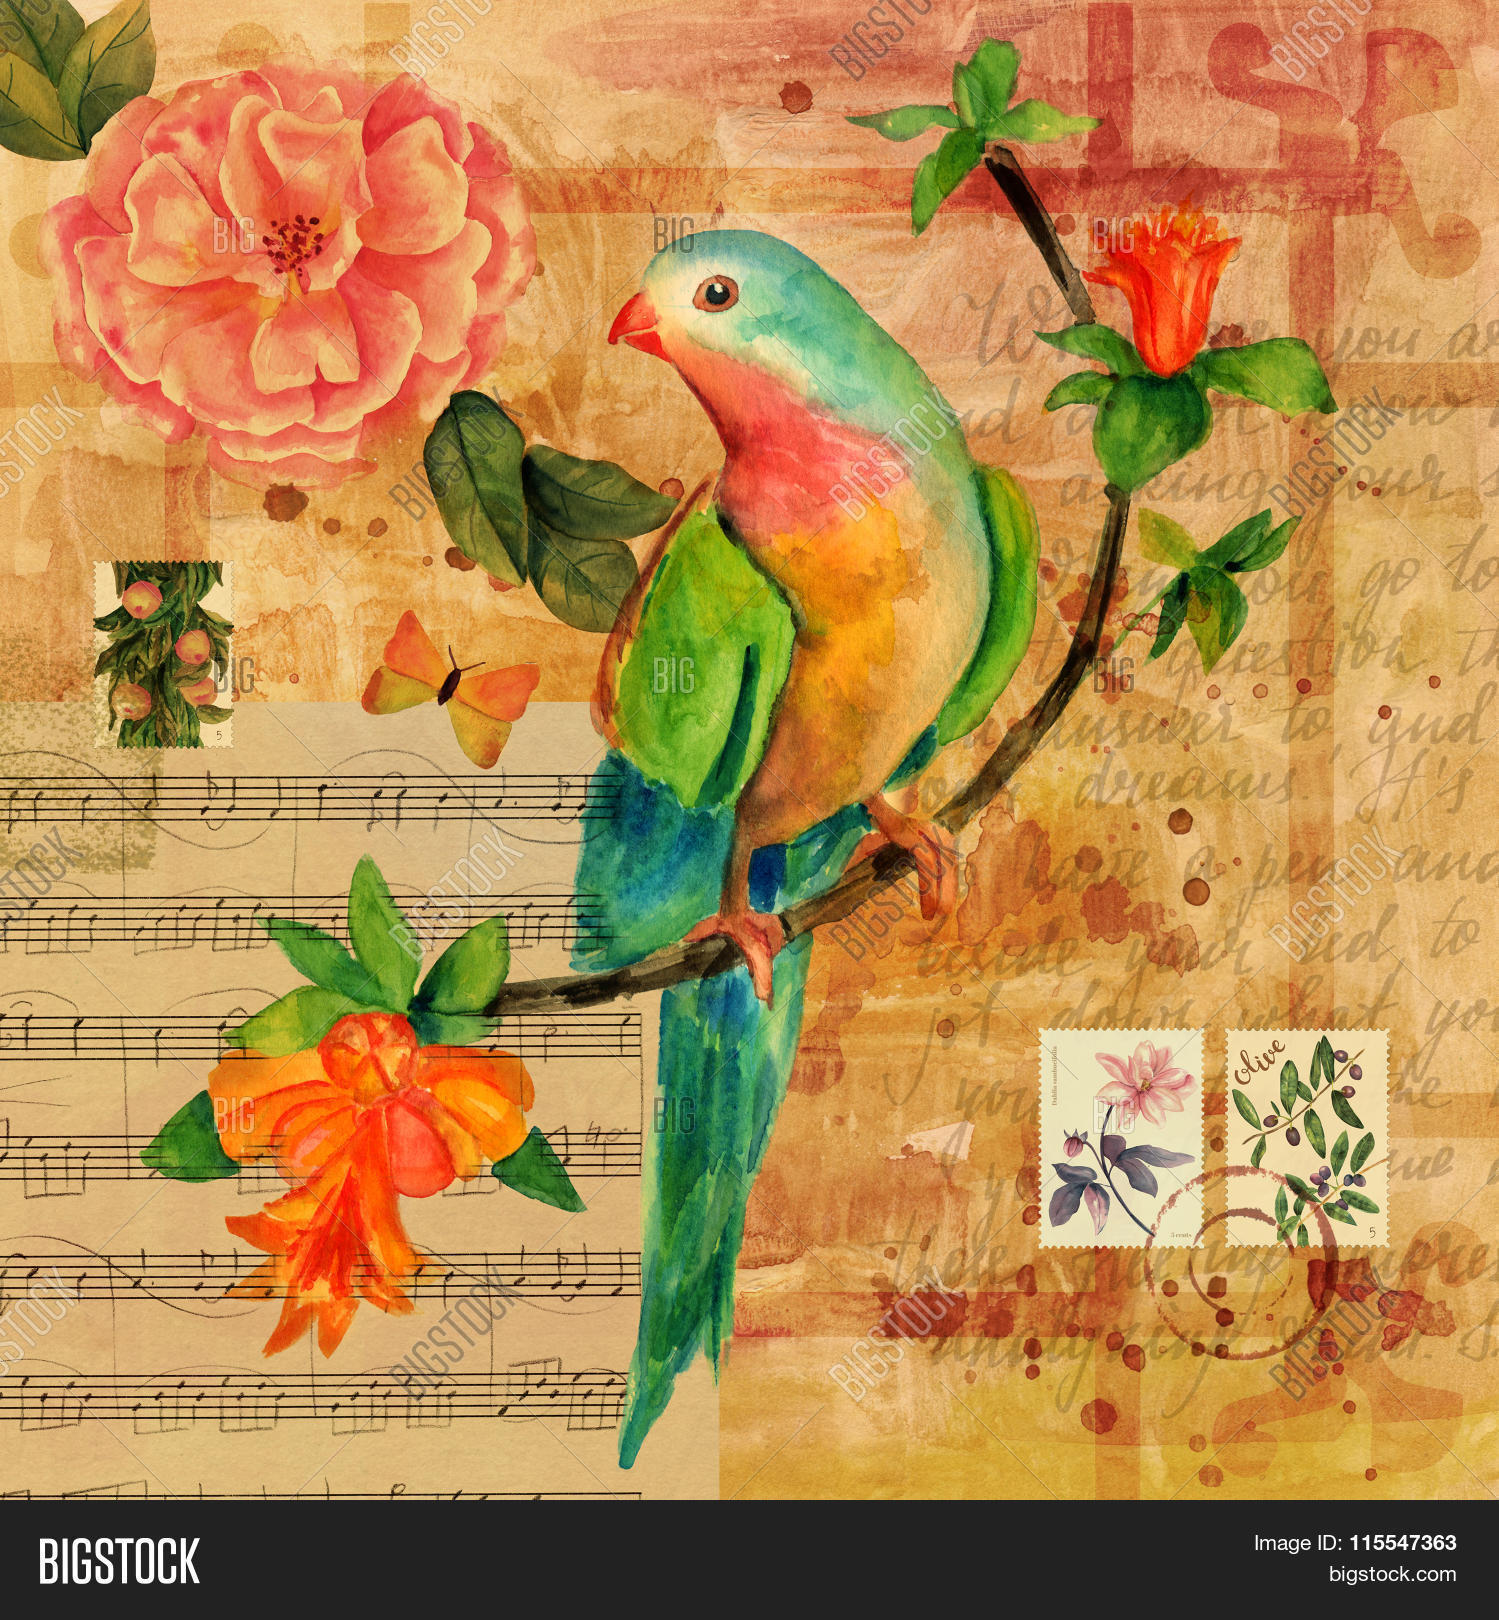 Vintage Collage With Sheet Music, Butterfly, Bird, Rose Et